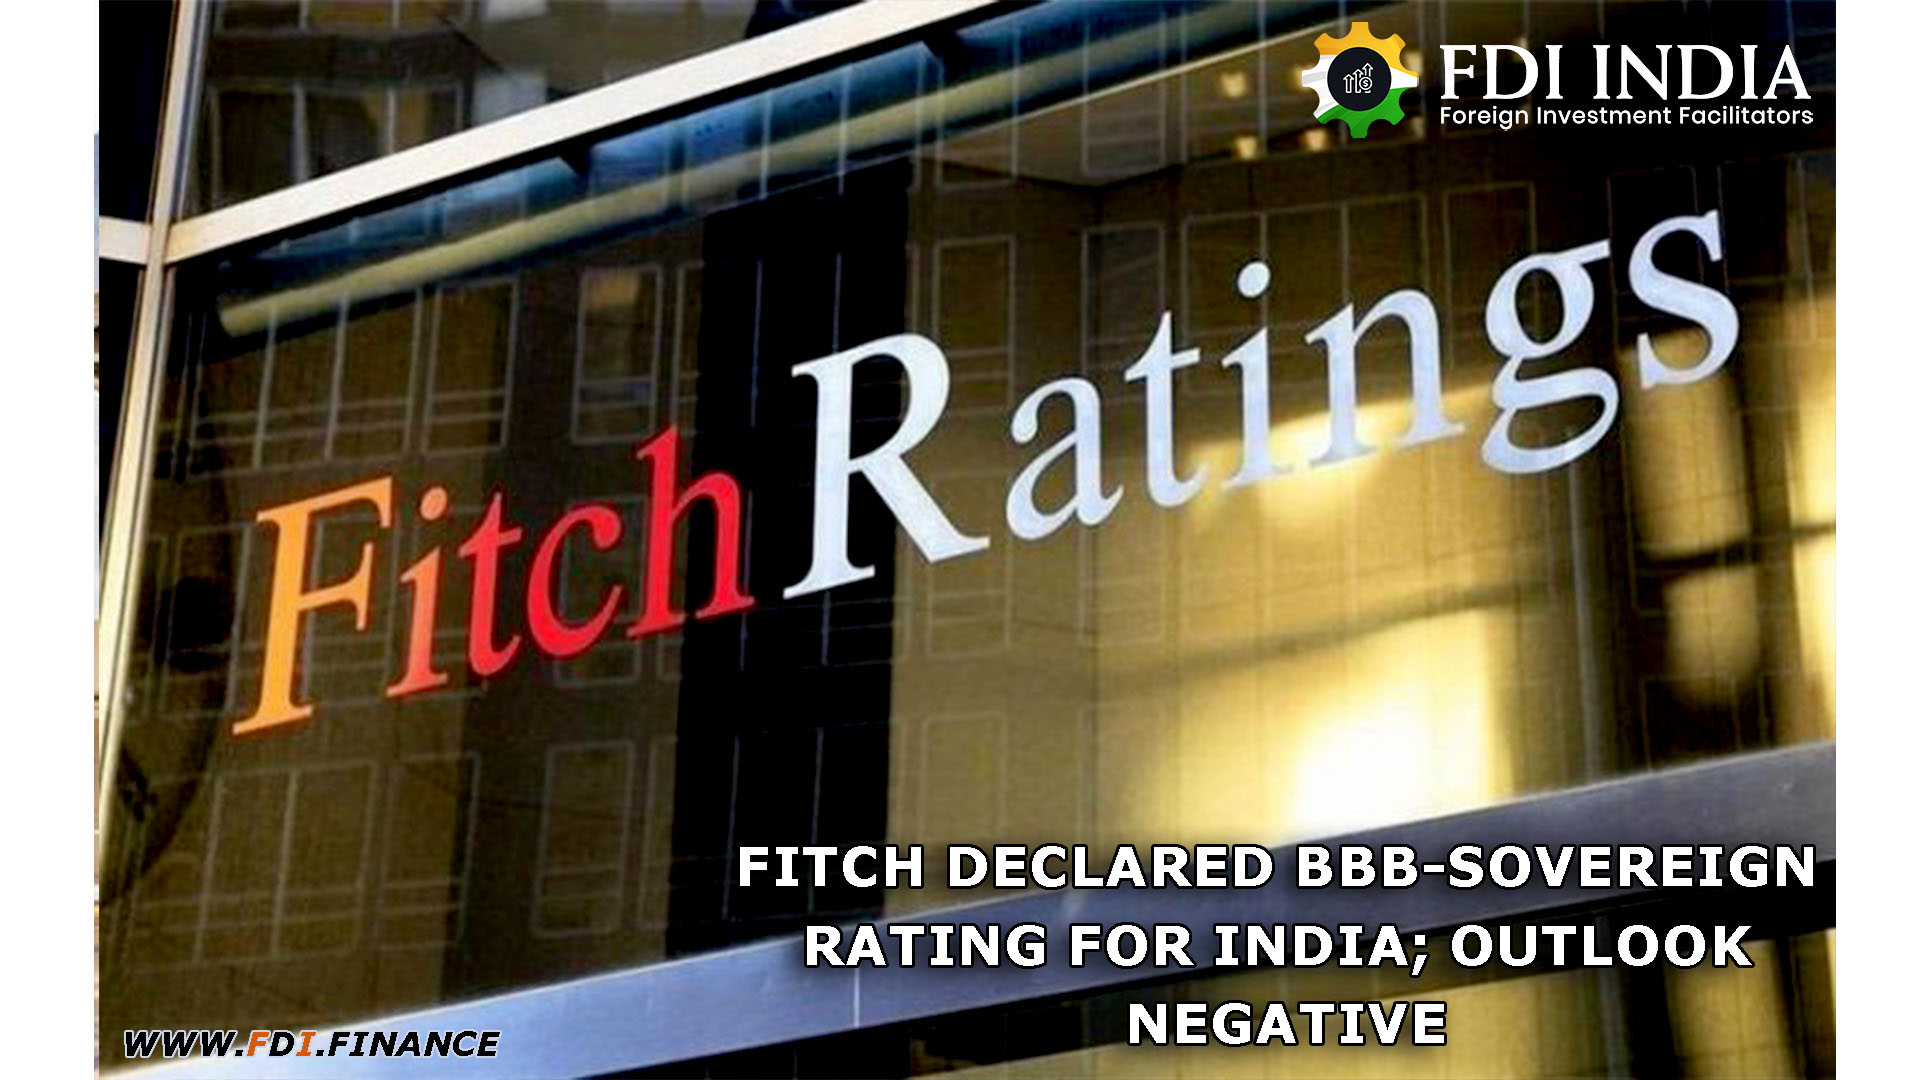 Fitch Declared BBB-Sovereign Rating For India; Outlook Negative